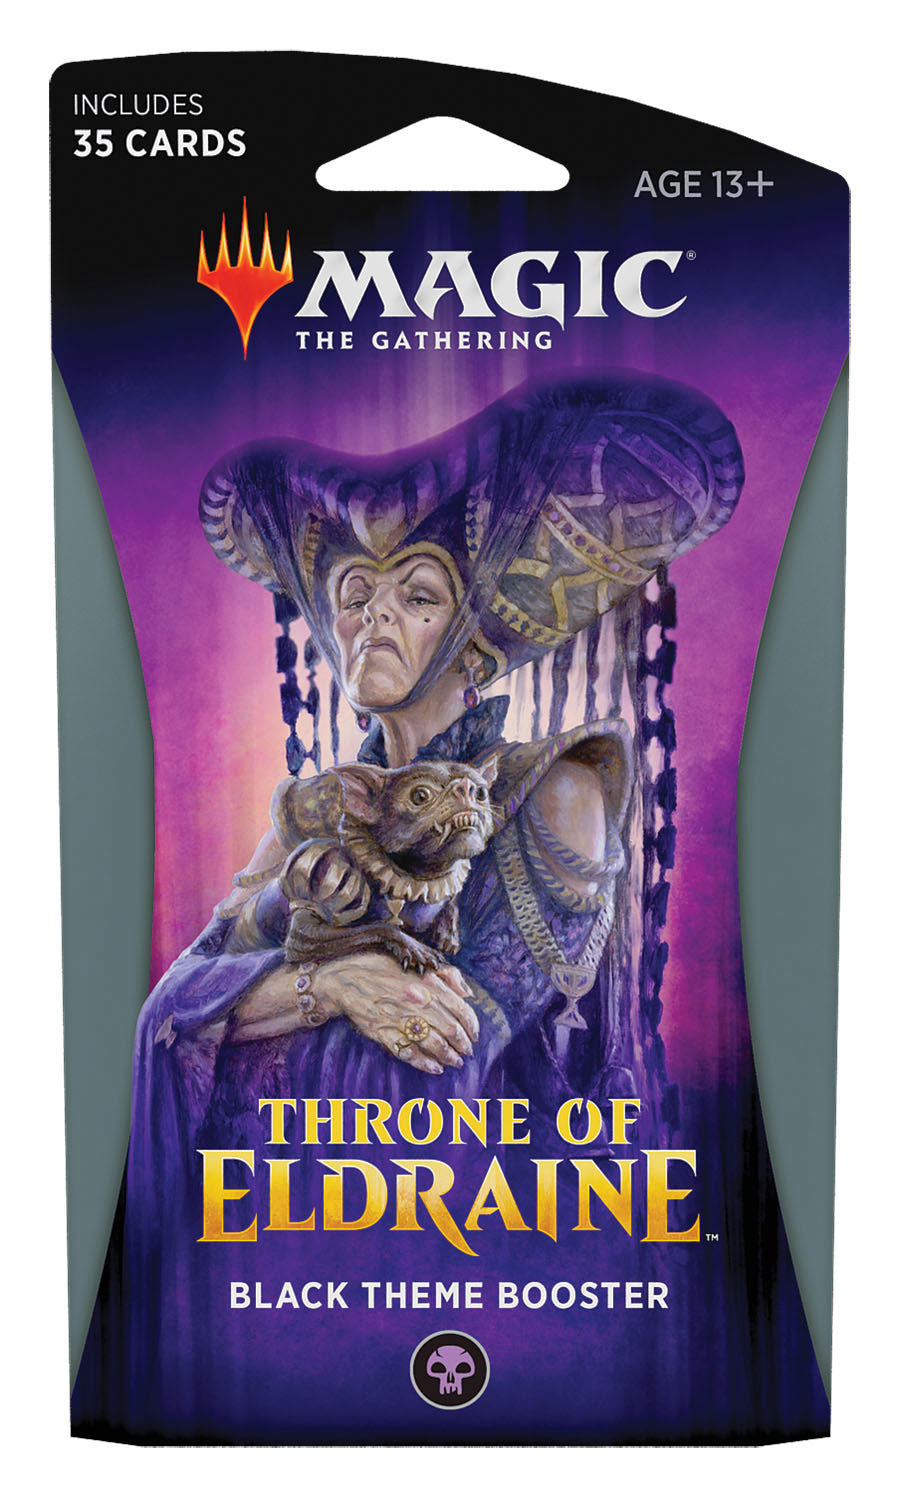 Magic The Gathering: Throne of Eldraine Black Theme Booster